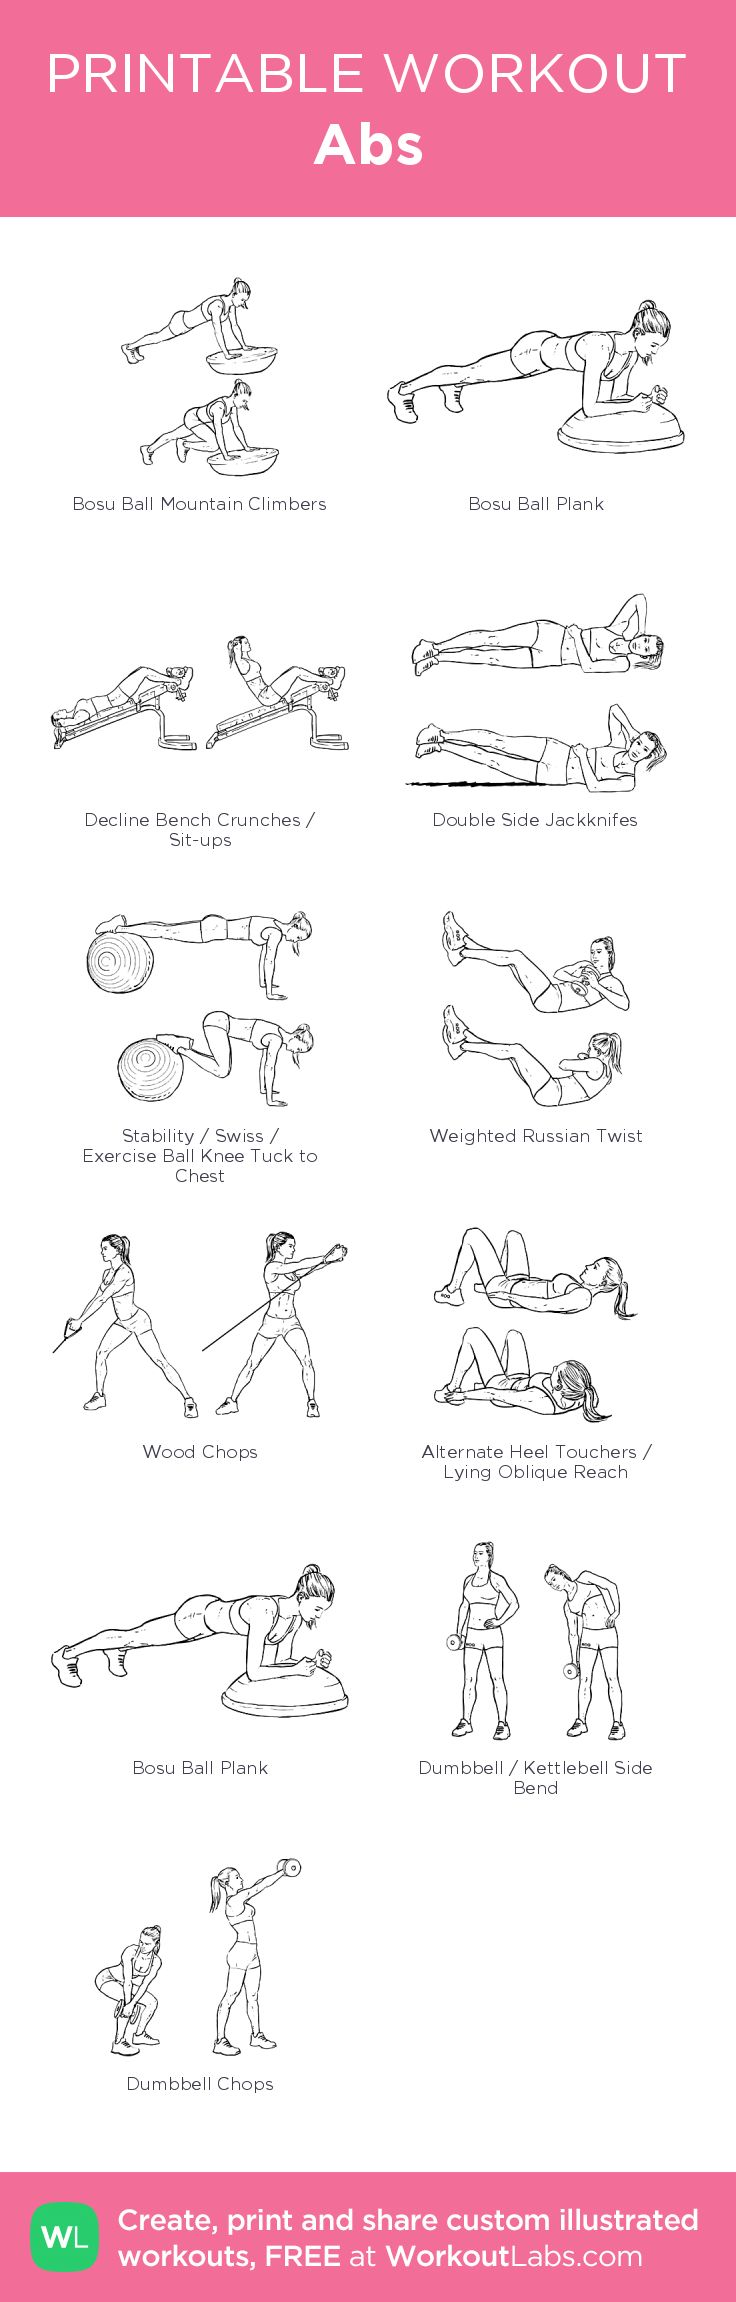 best 25 printable workouts ideas on pinterest gym workouts arm